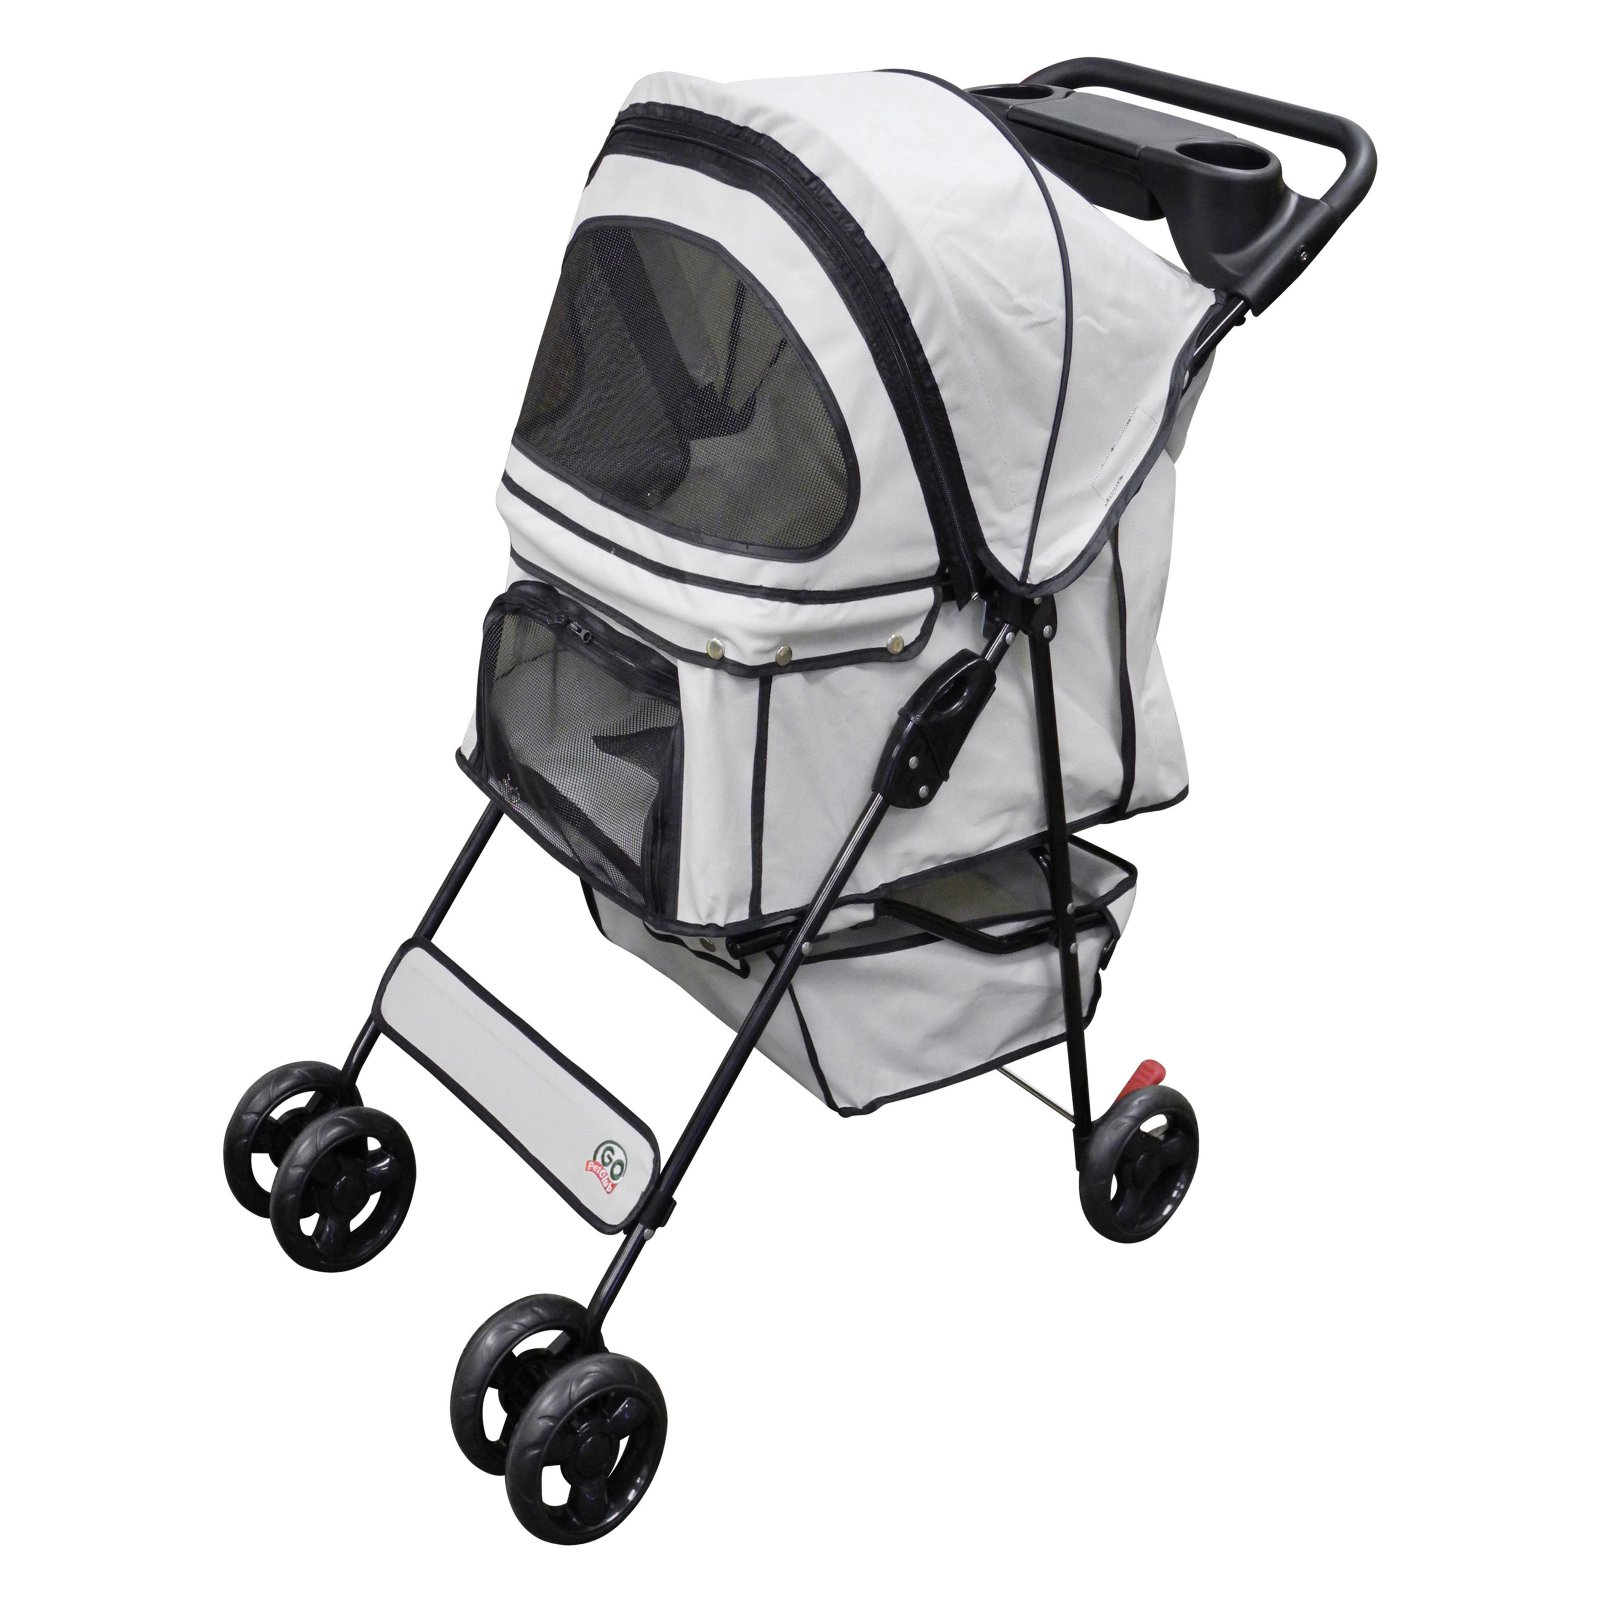 Go Pet Club Pet Stroller in Beige - PS003